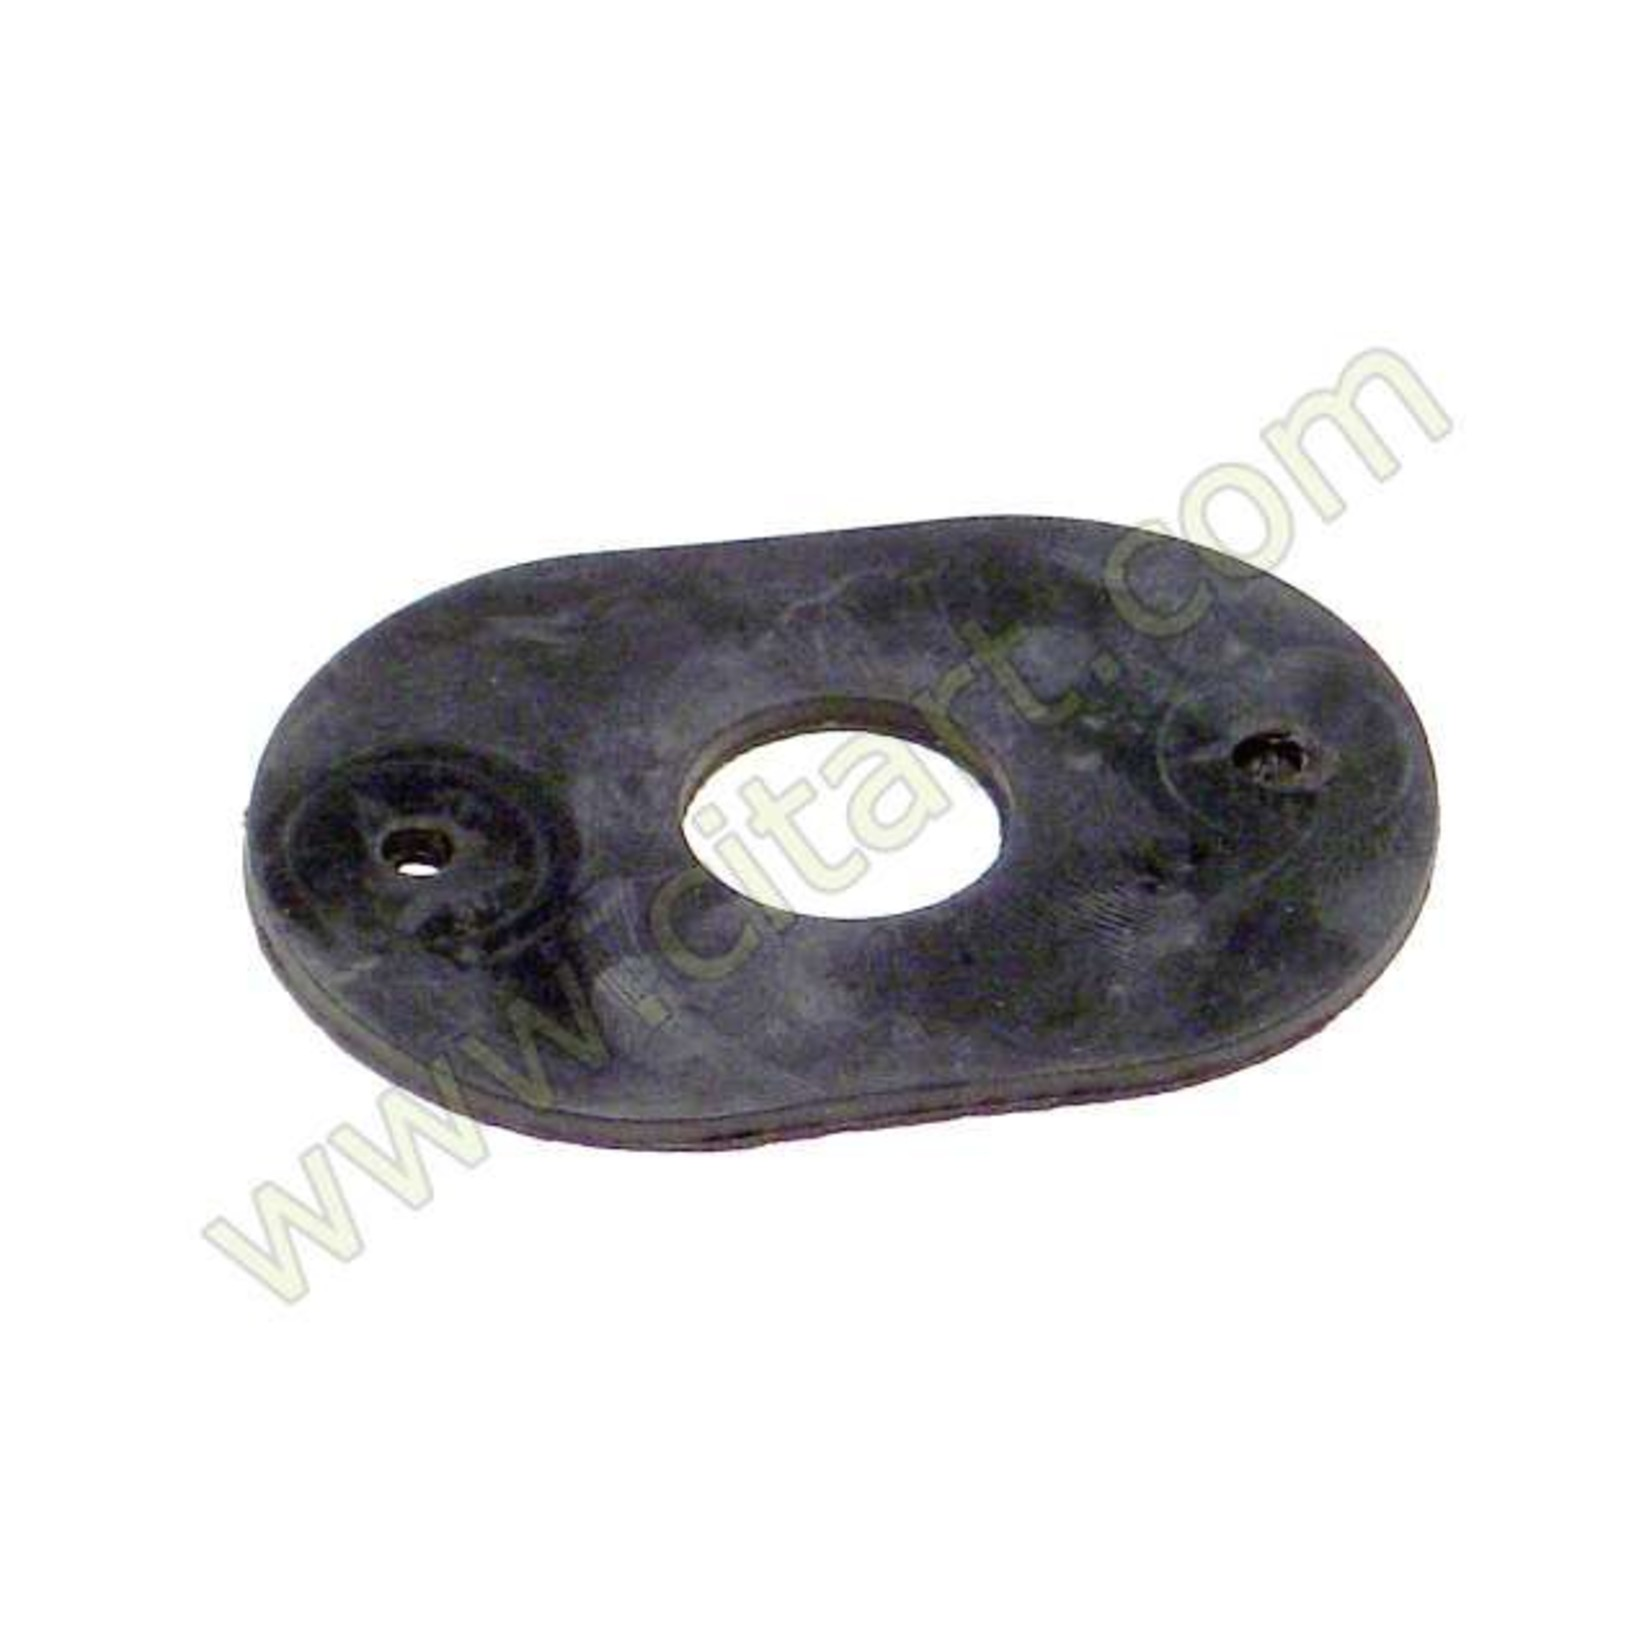 Rubber oval rear wing Nr Org: DX851221A